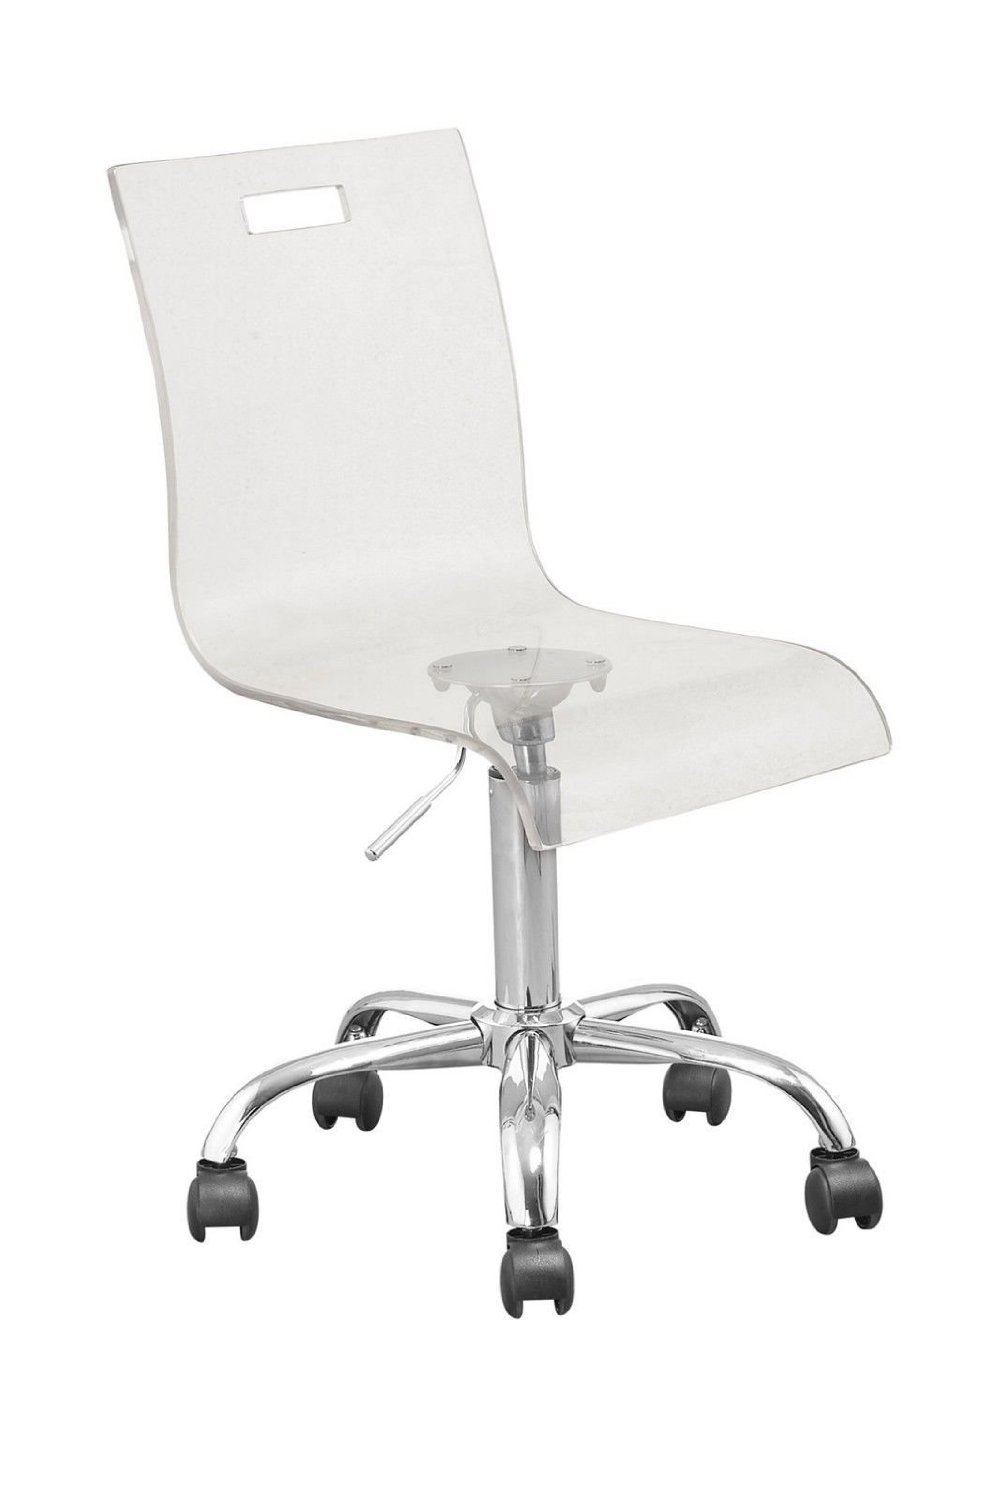 chair office import product clear wheels eiffel desk plata